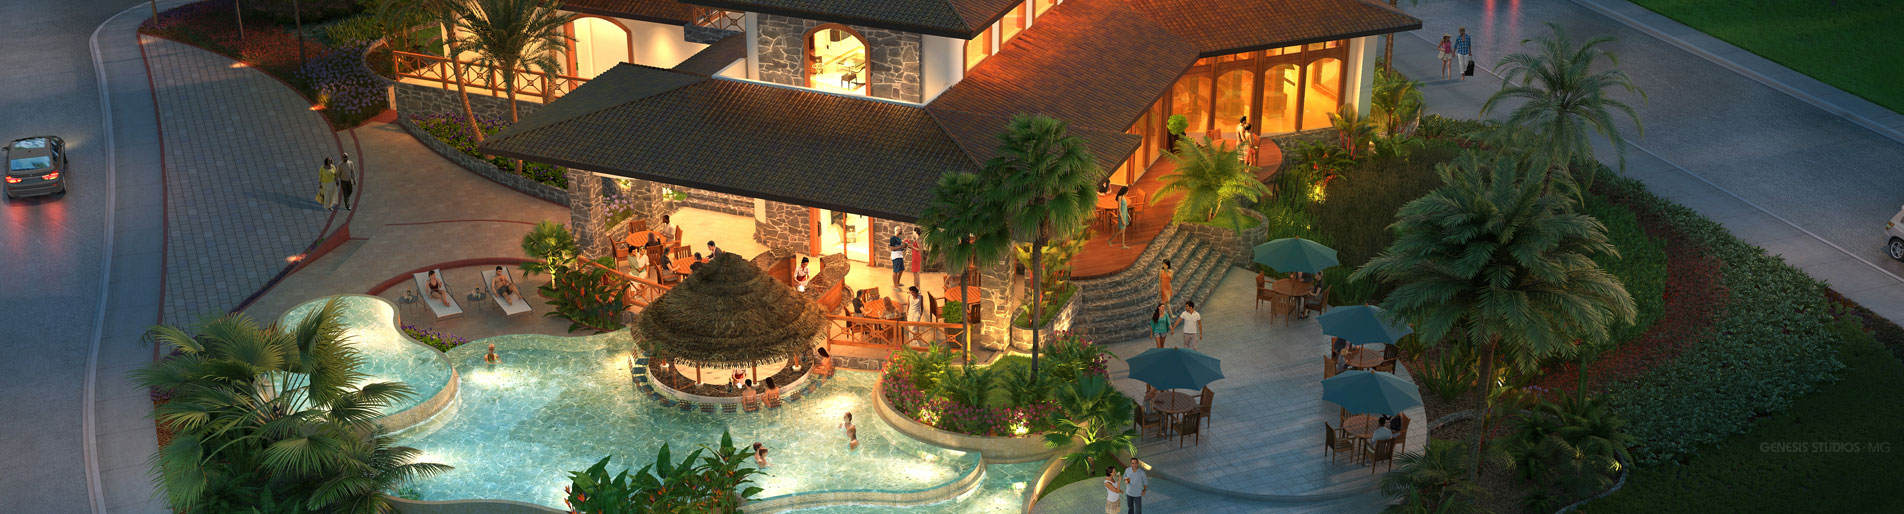 515066-Costa_Rica_Land_Capital_Partners-Clubhouse-Header